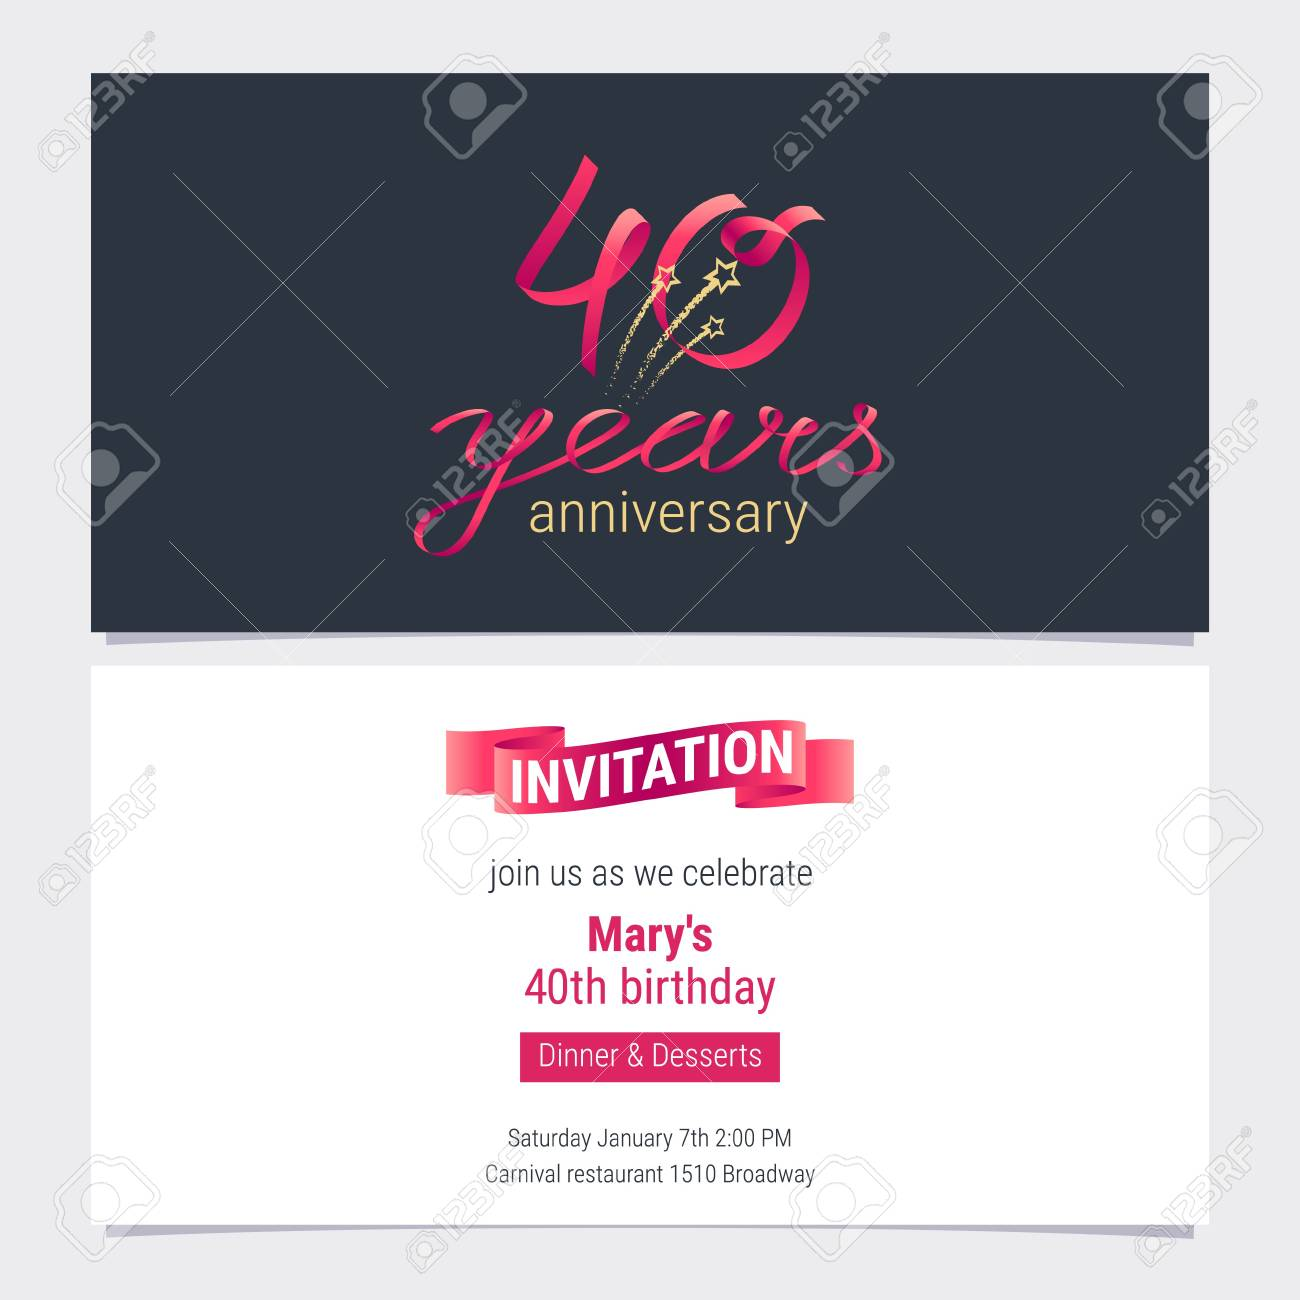 40 Years Anniversary Invite Vector Illustration Graphic Design Element For 40th Birthday Card Party